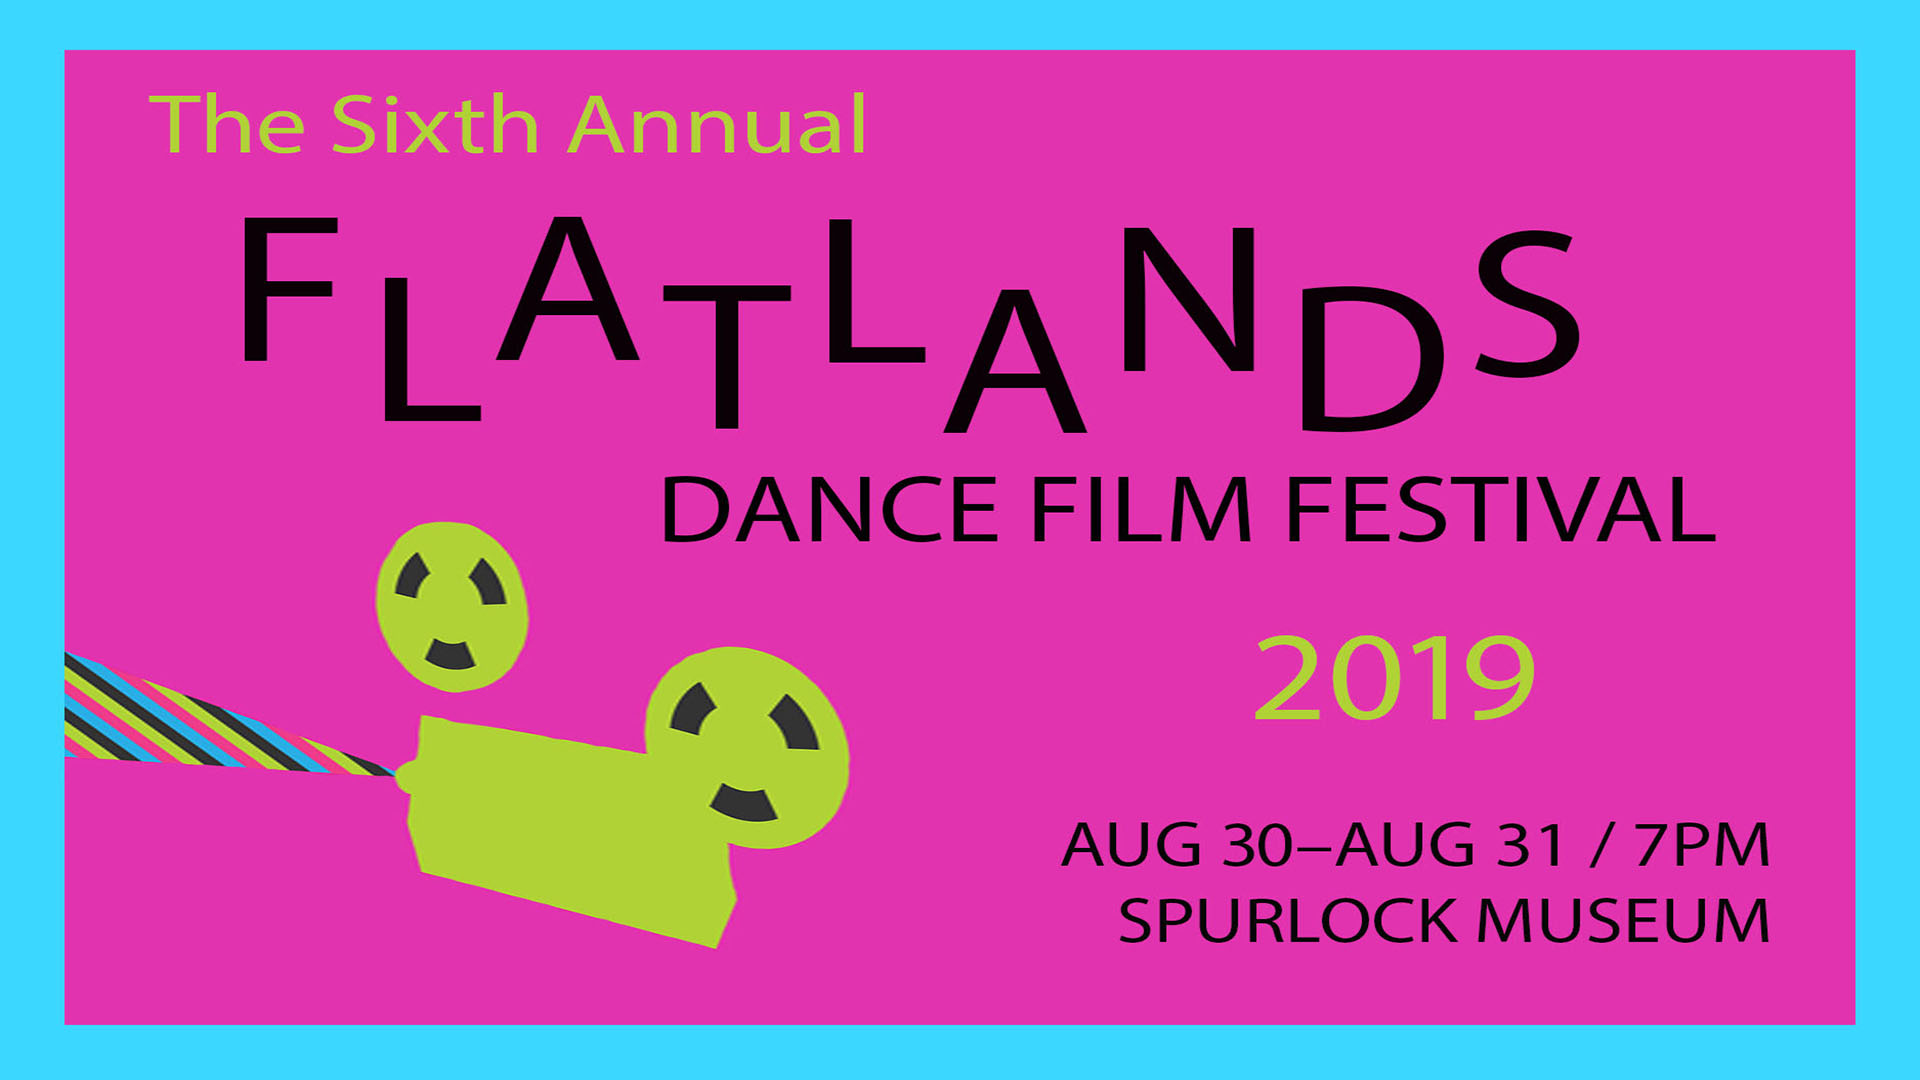 The Sixth Annual Flatlands Dance Film Festival 2019 August 30 to August 31 7pm Spurlock Museum with purple background and yellow camera with rainbow film tape coming out